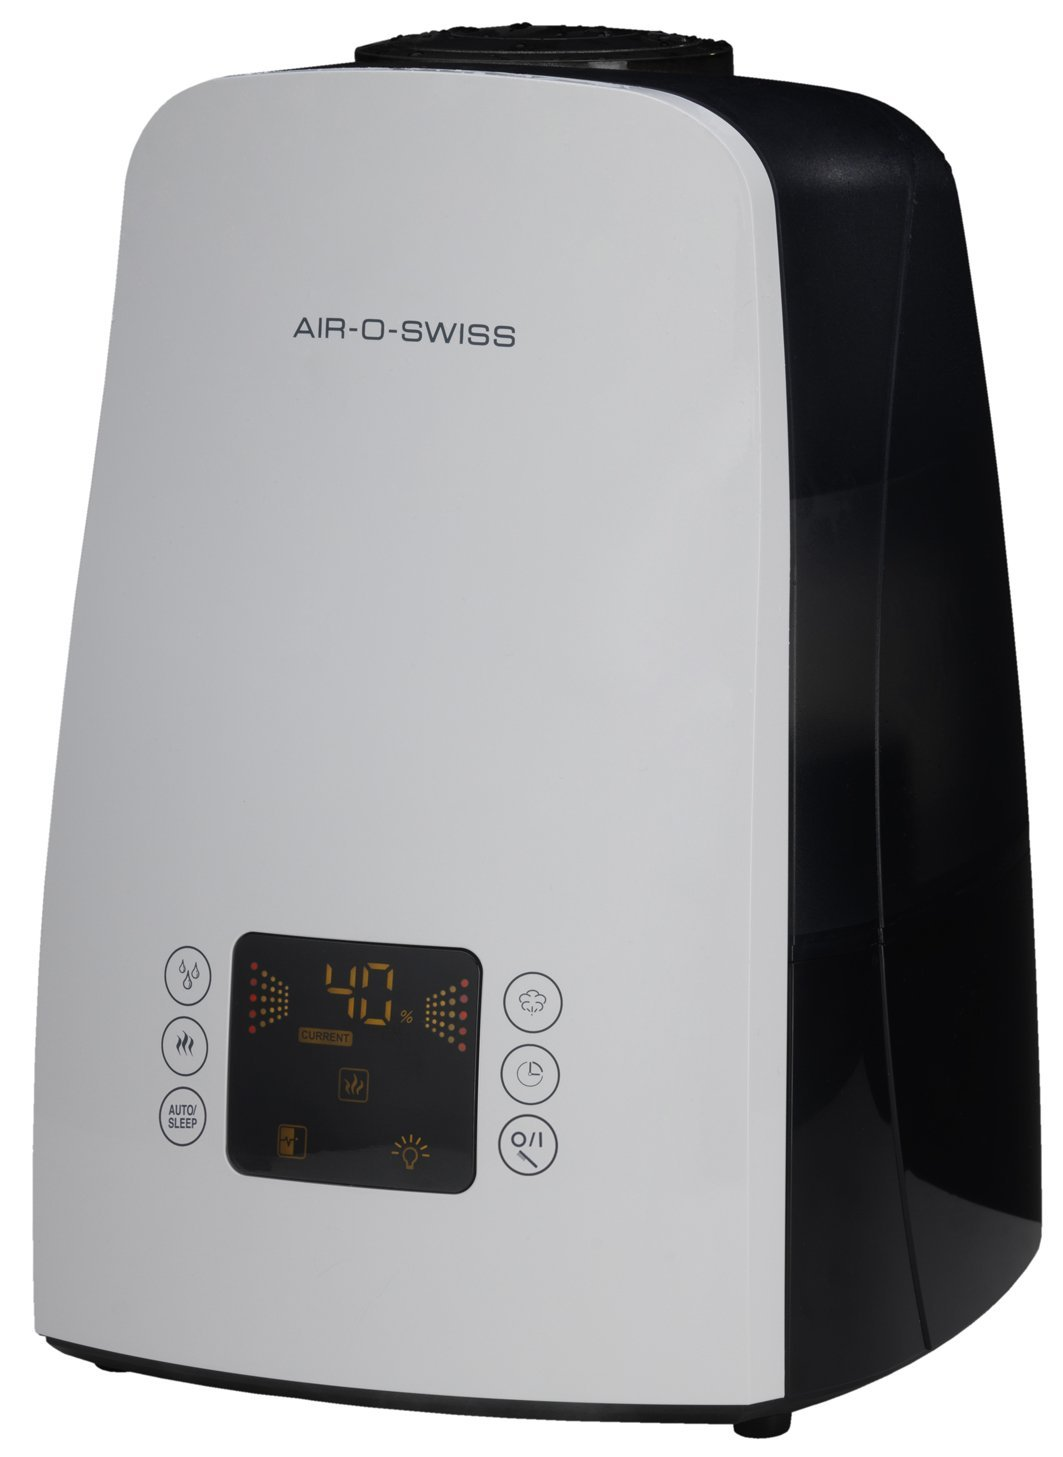 Air O Swiss Humidifier Reviews Review for 7135 7142 7144 #74582C